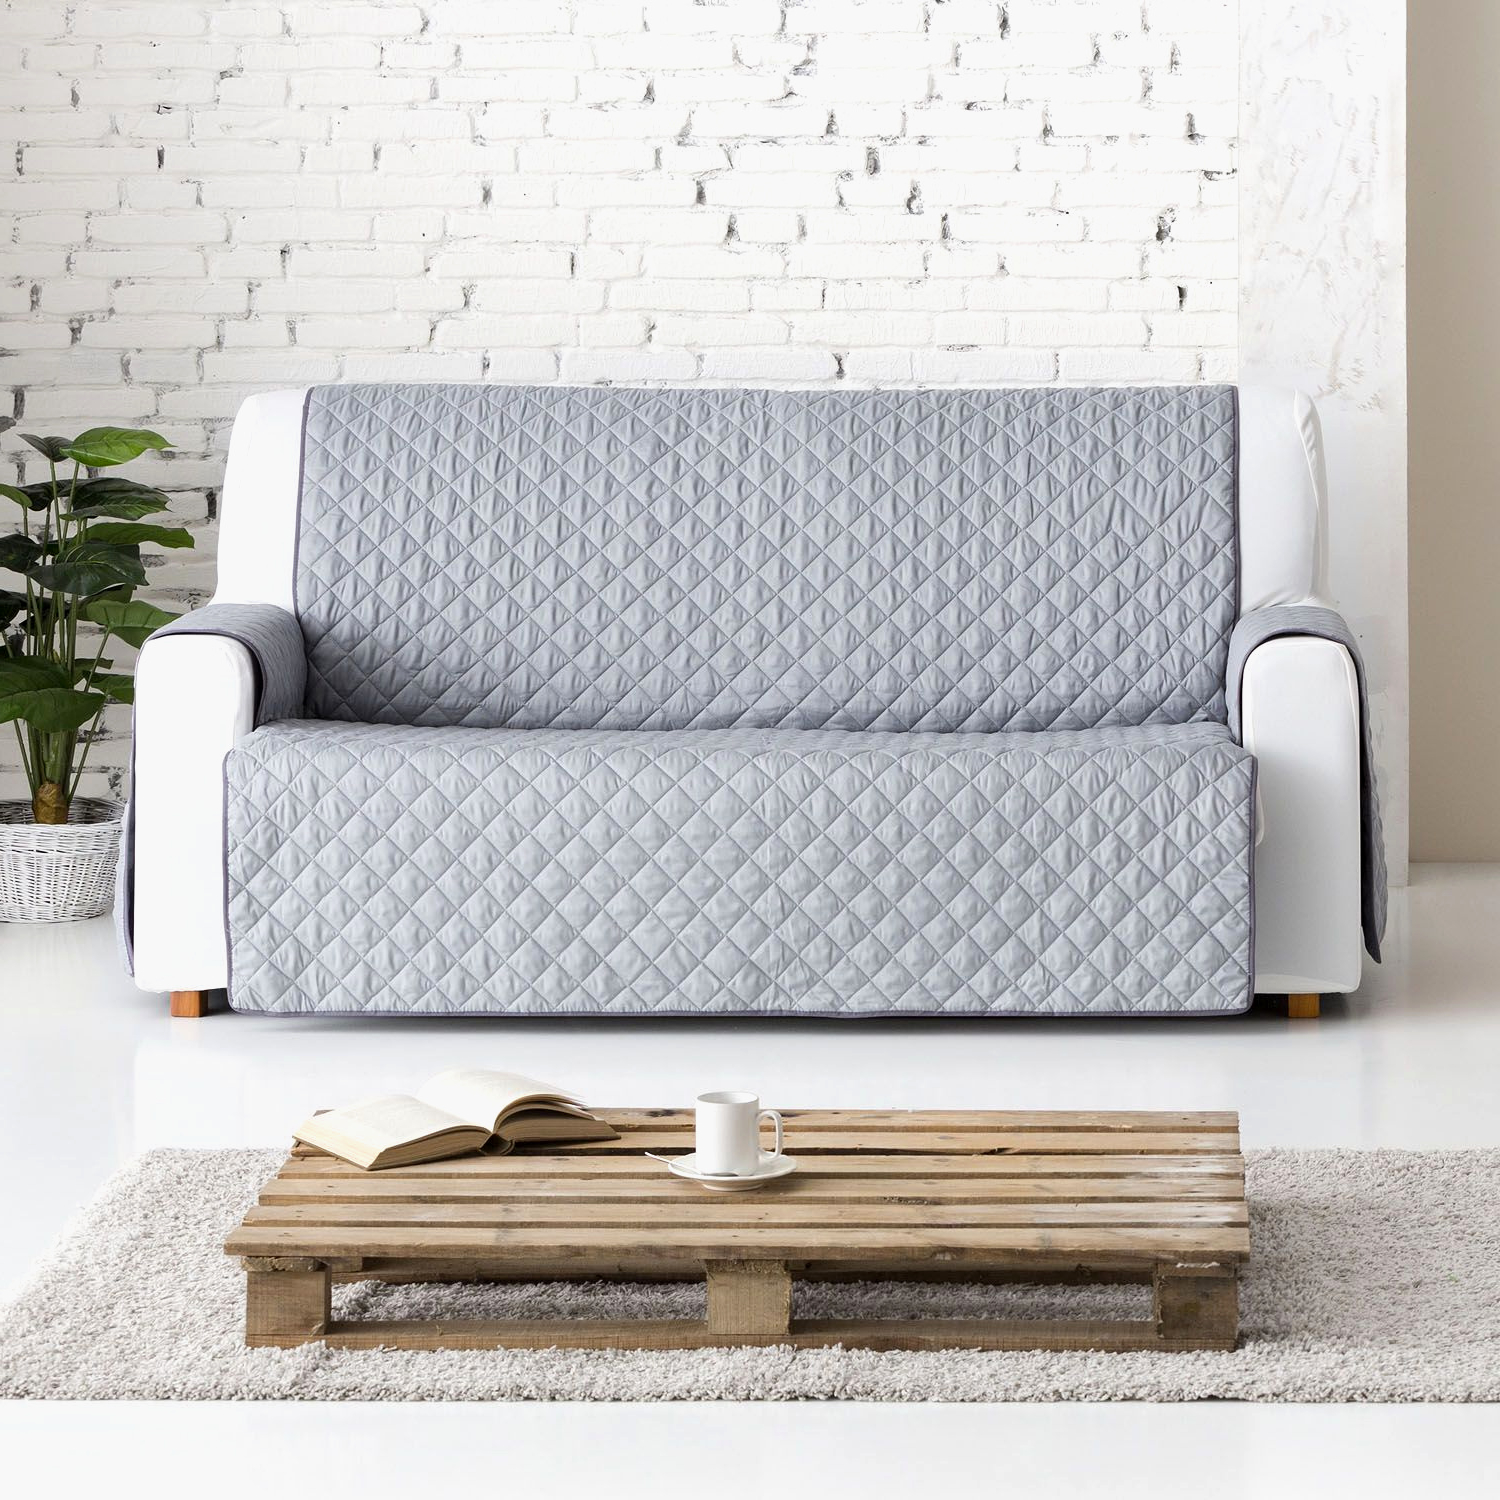 Fundas De sofa Ajustables Conforama Dddy Fundas De sofa Ajustables Leroy Merlin Funda De sofa Chaise Longue